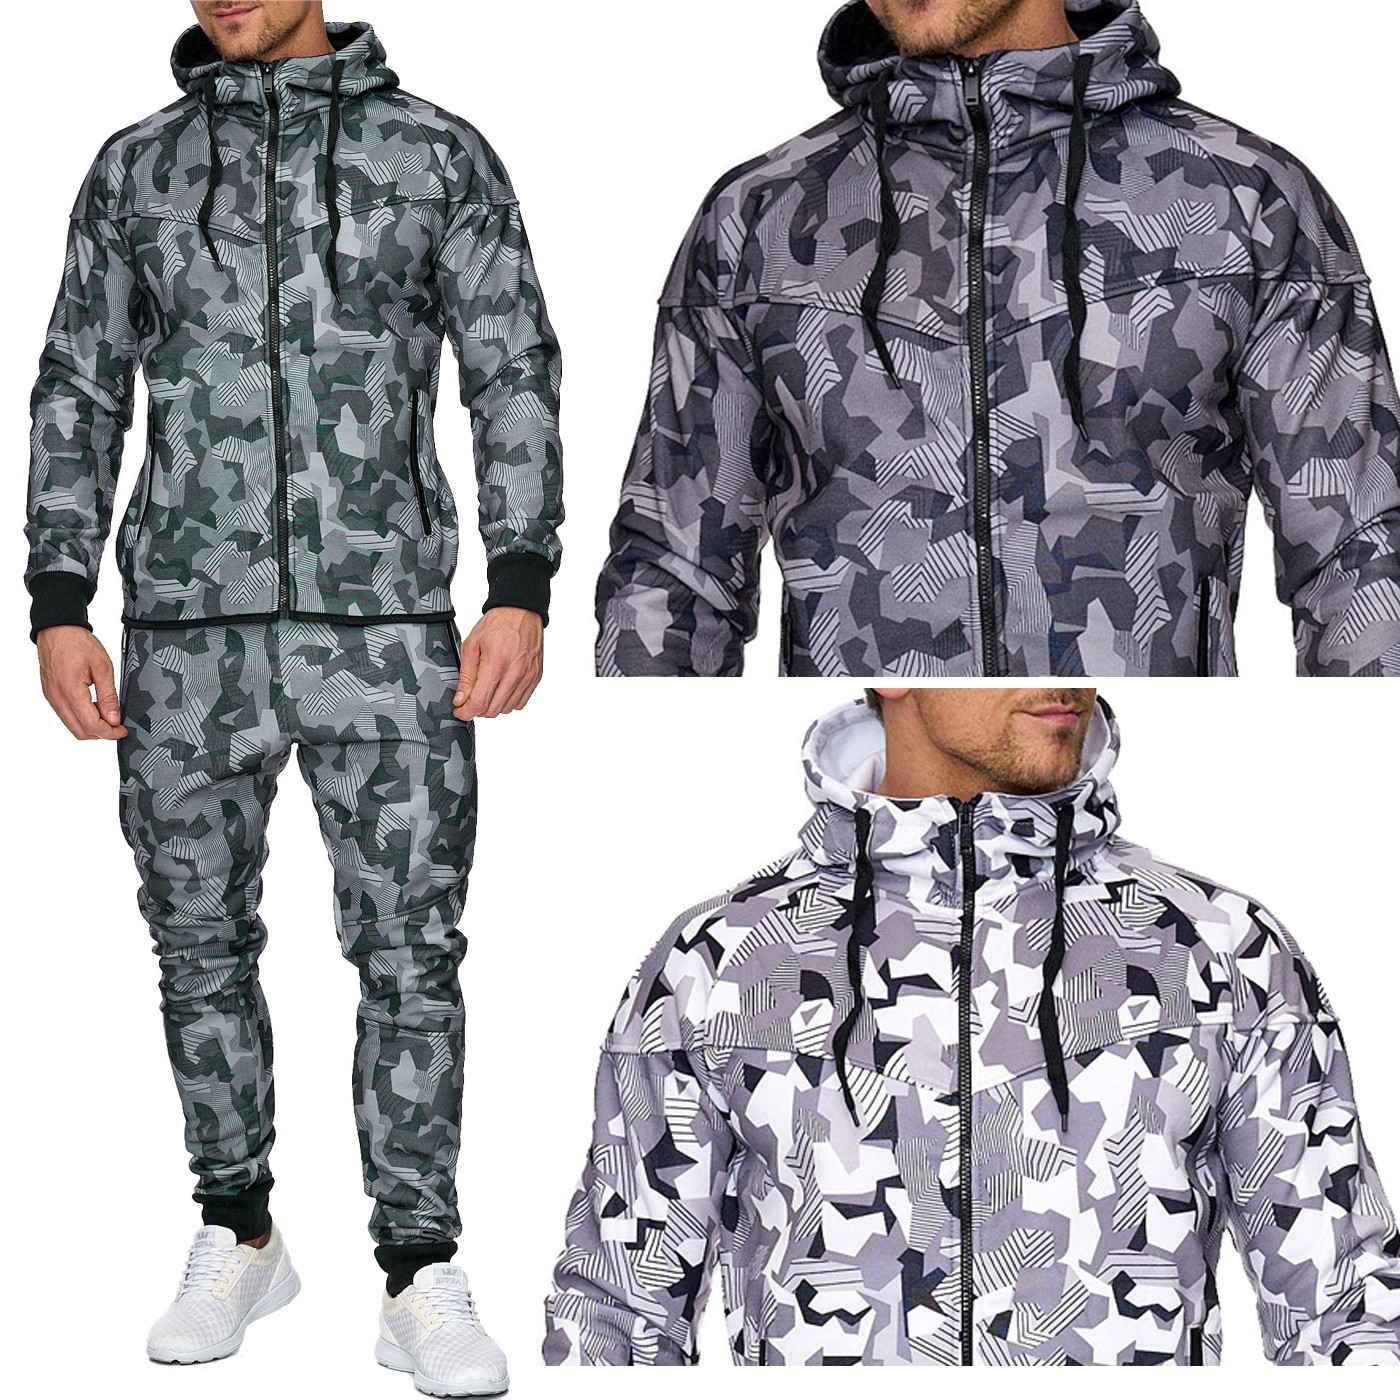 herren jogging anzug training set sweat sport army muster. Black Bedroom Furniture Sets. Home Design Ideas